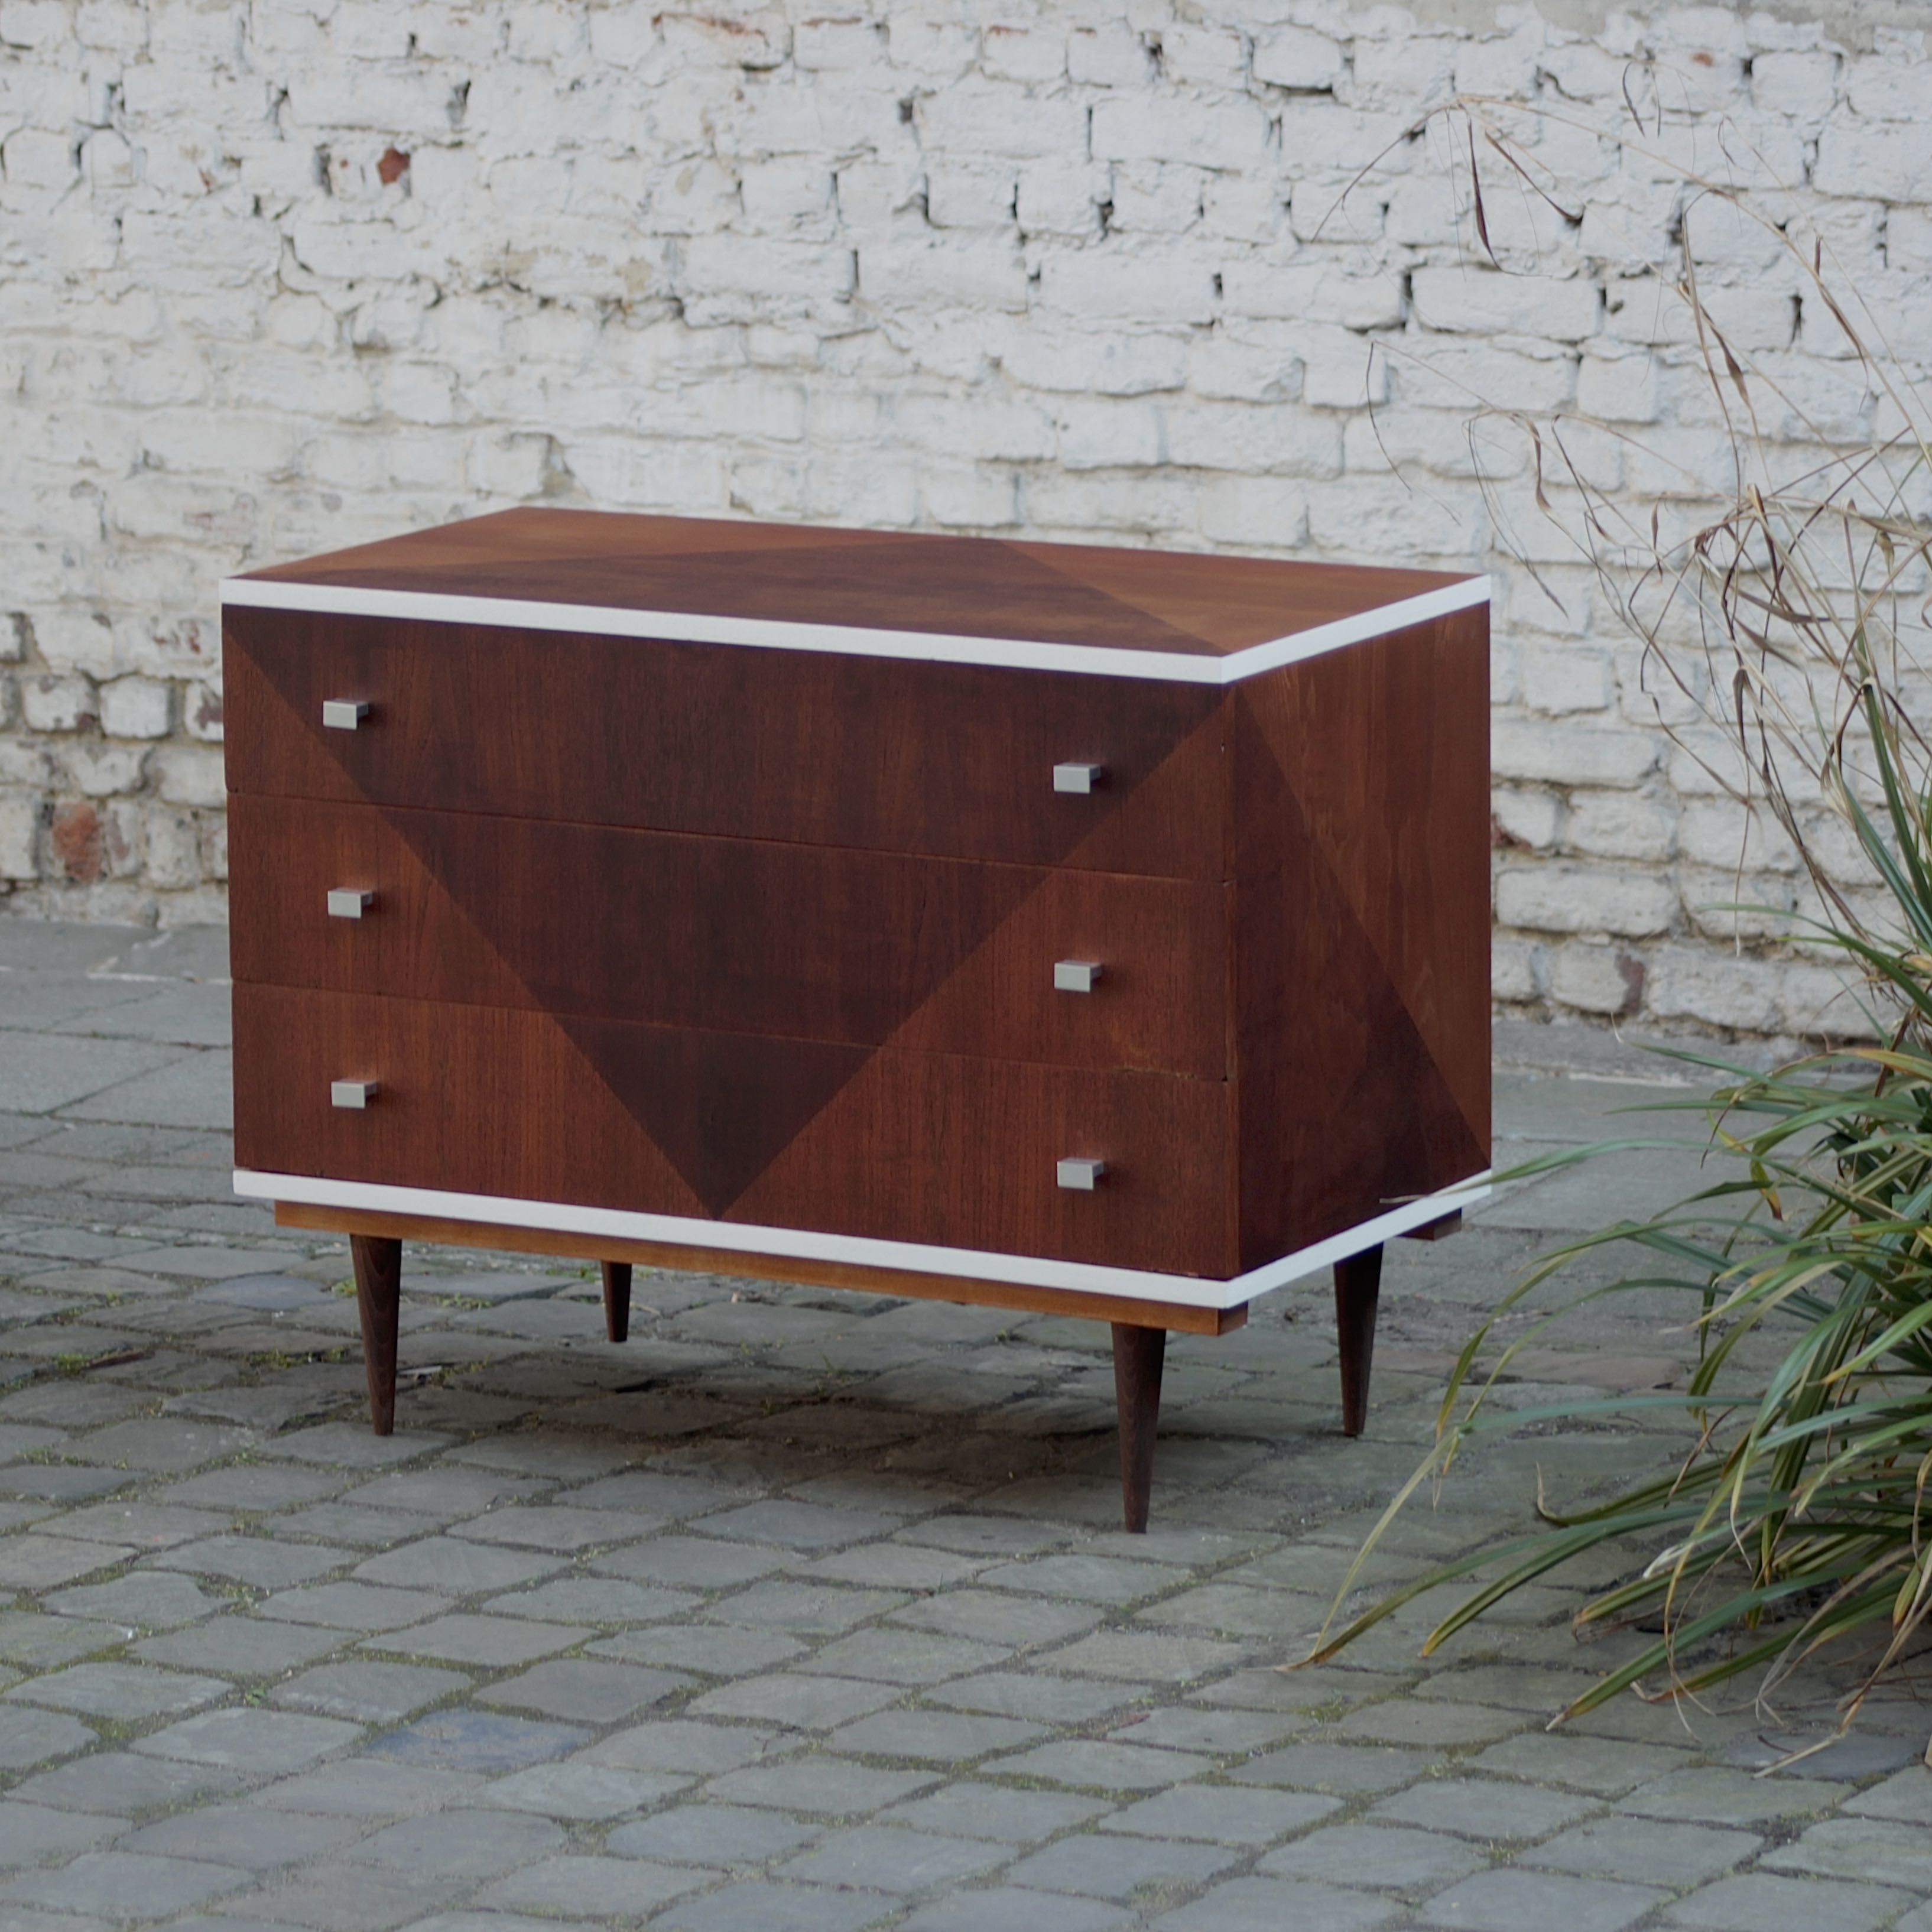 Upcycled Renovated Furniture Meuble Vintage Renove By Madeleine Bruxelles Belgique Belgium Upcycling Refurbished Vintage Furniture Renovated Secondha